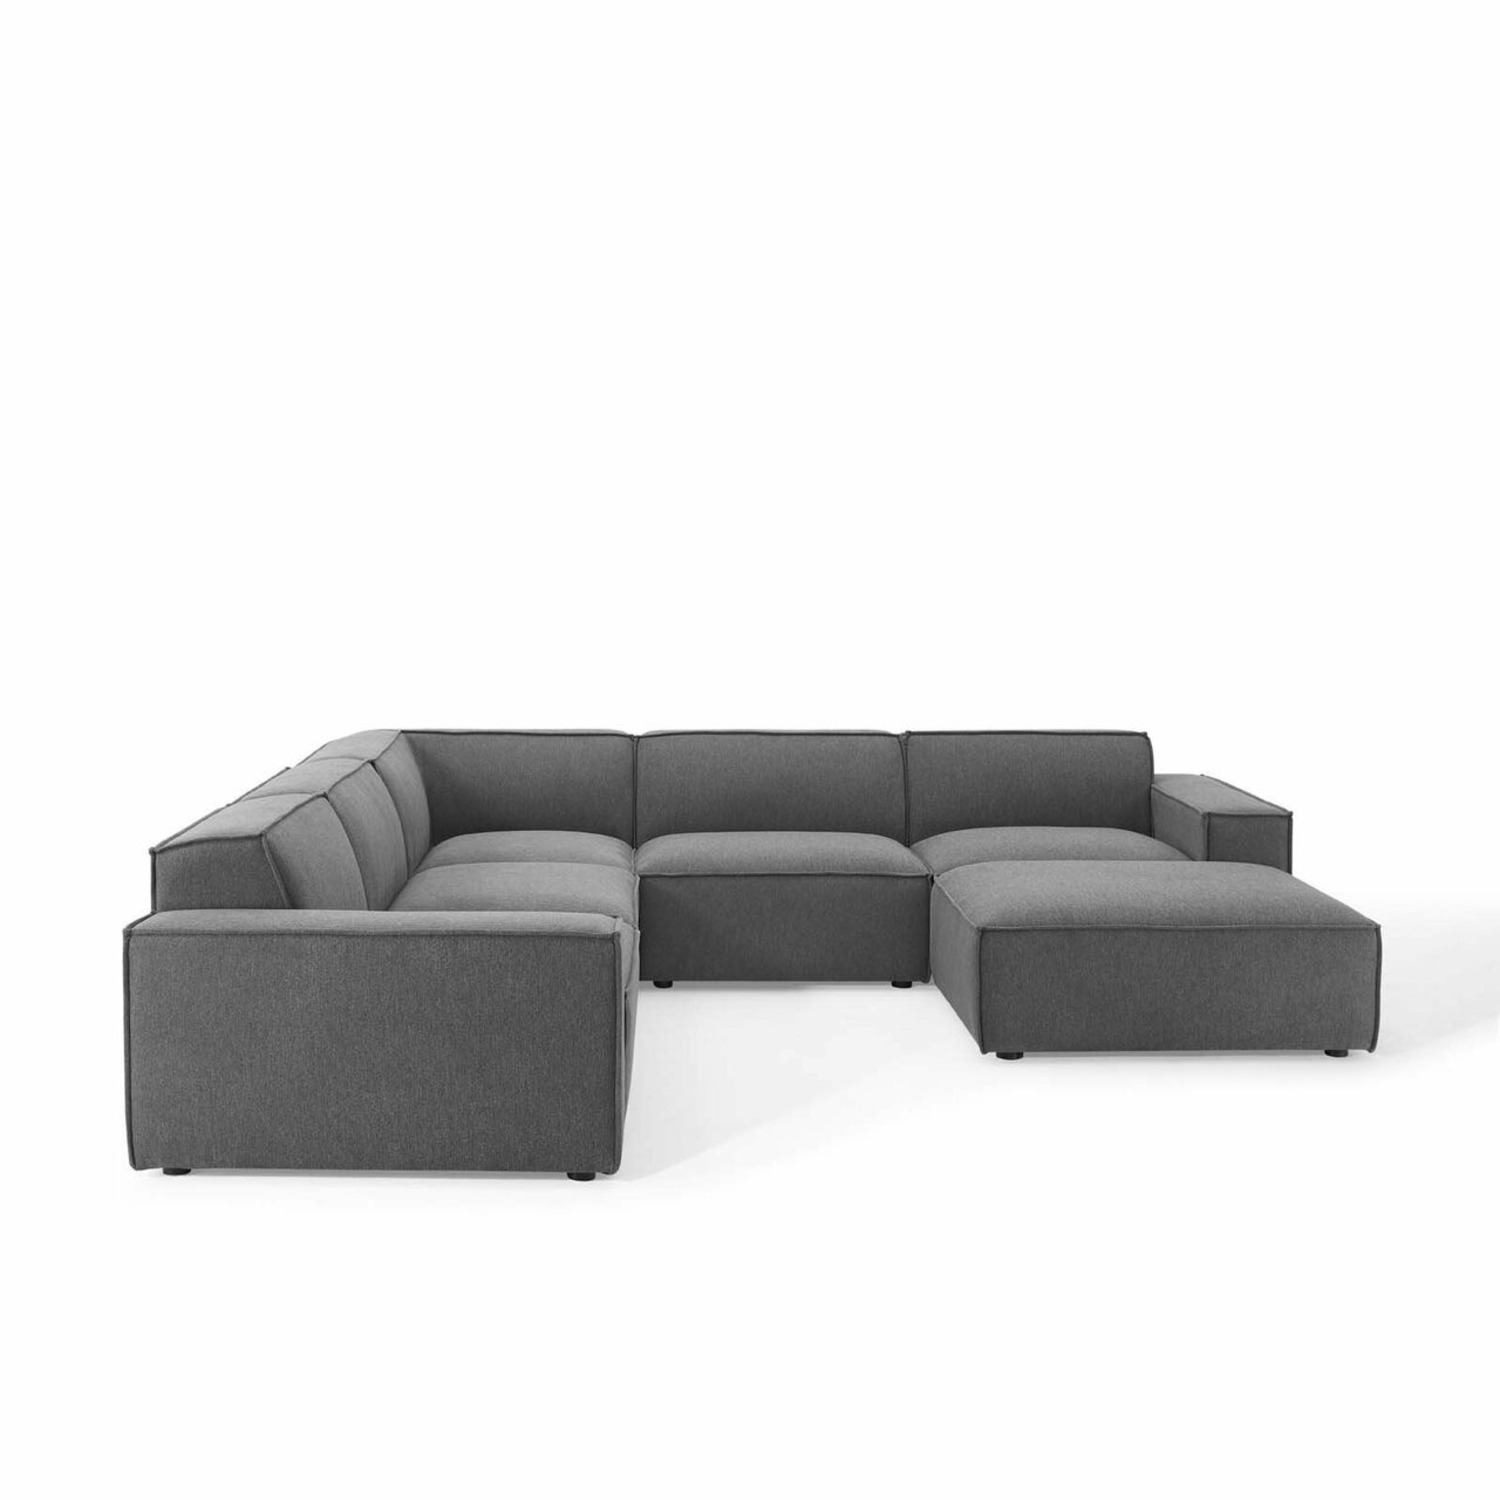 6-Piece Sectional Sofa In Charcoal Fabric - image-1